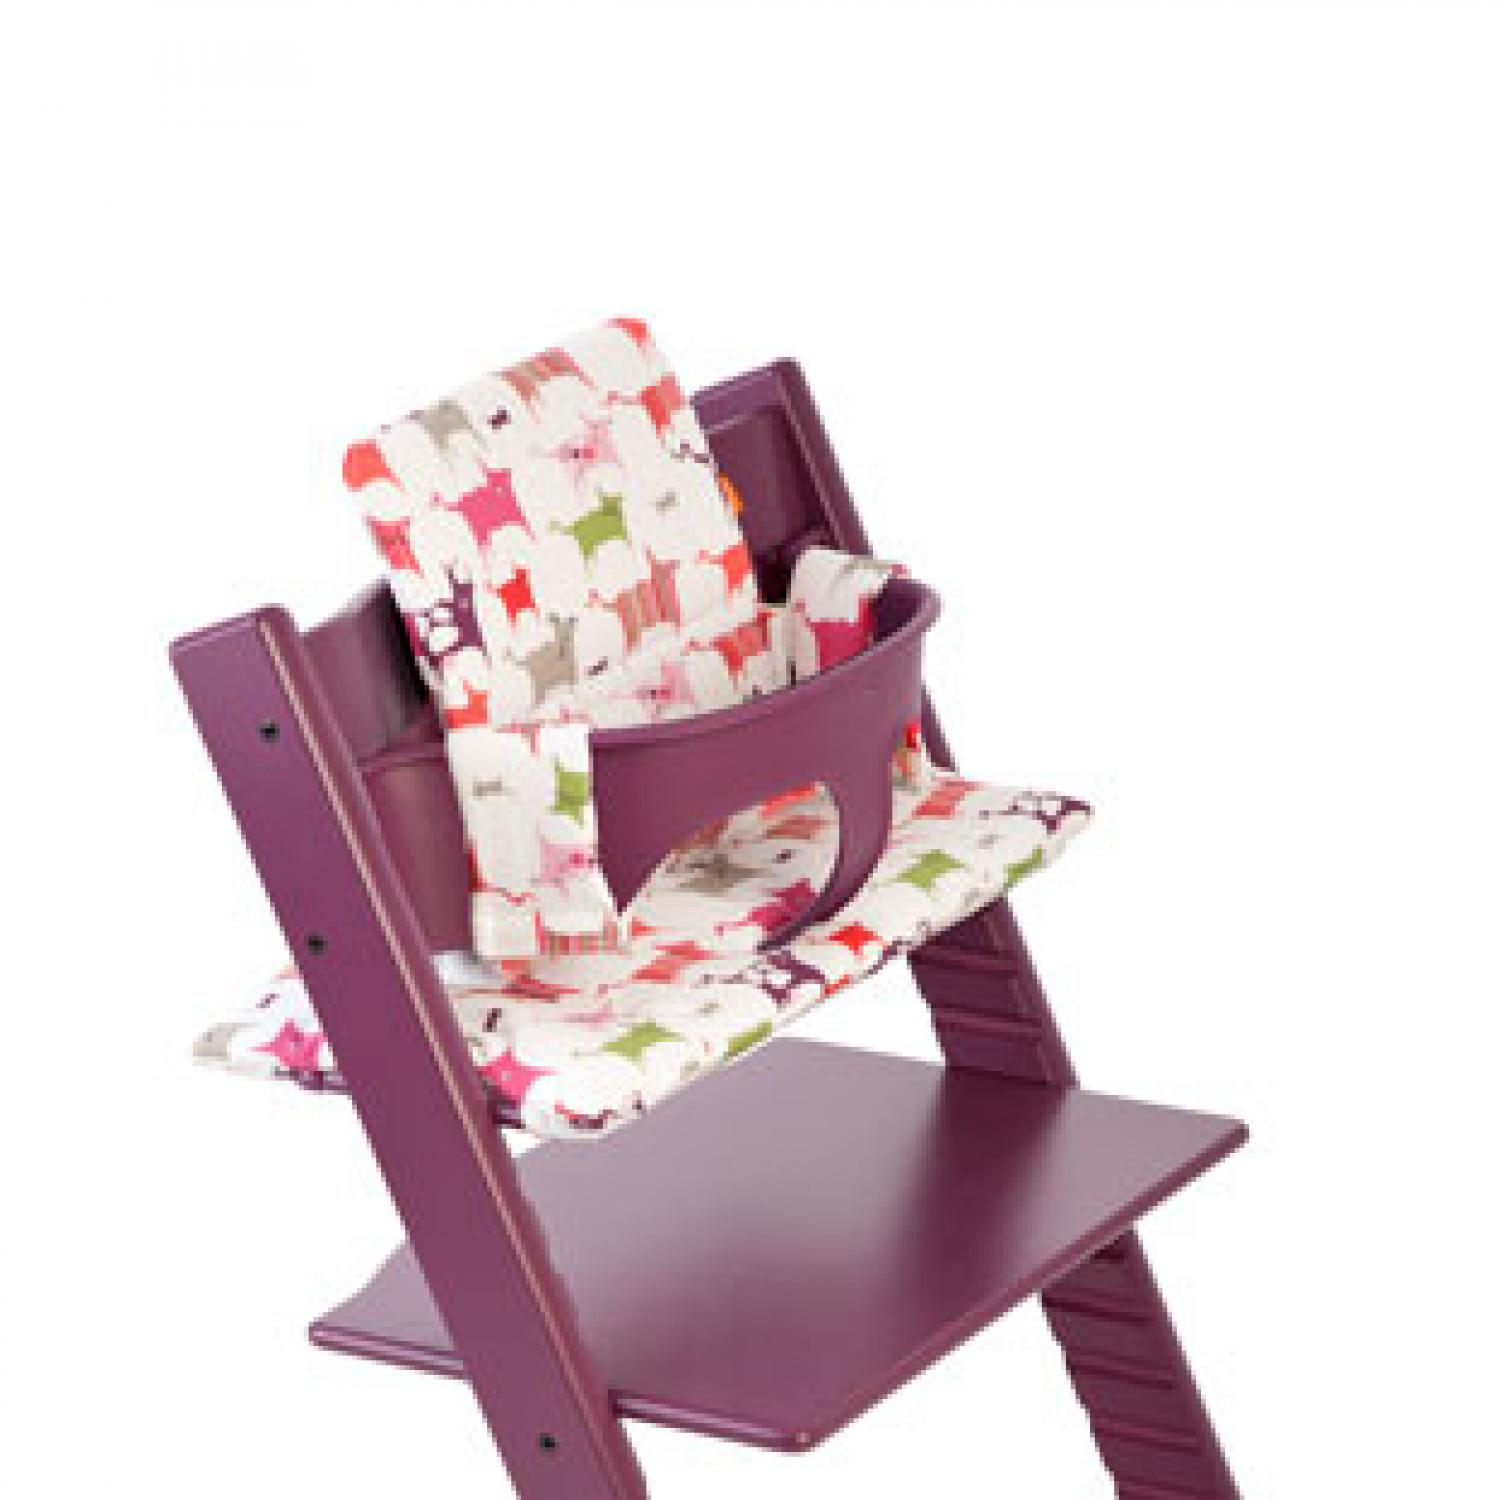 Enter to Win a Stokke Tripp Trapp Chair